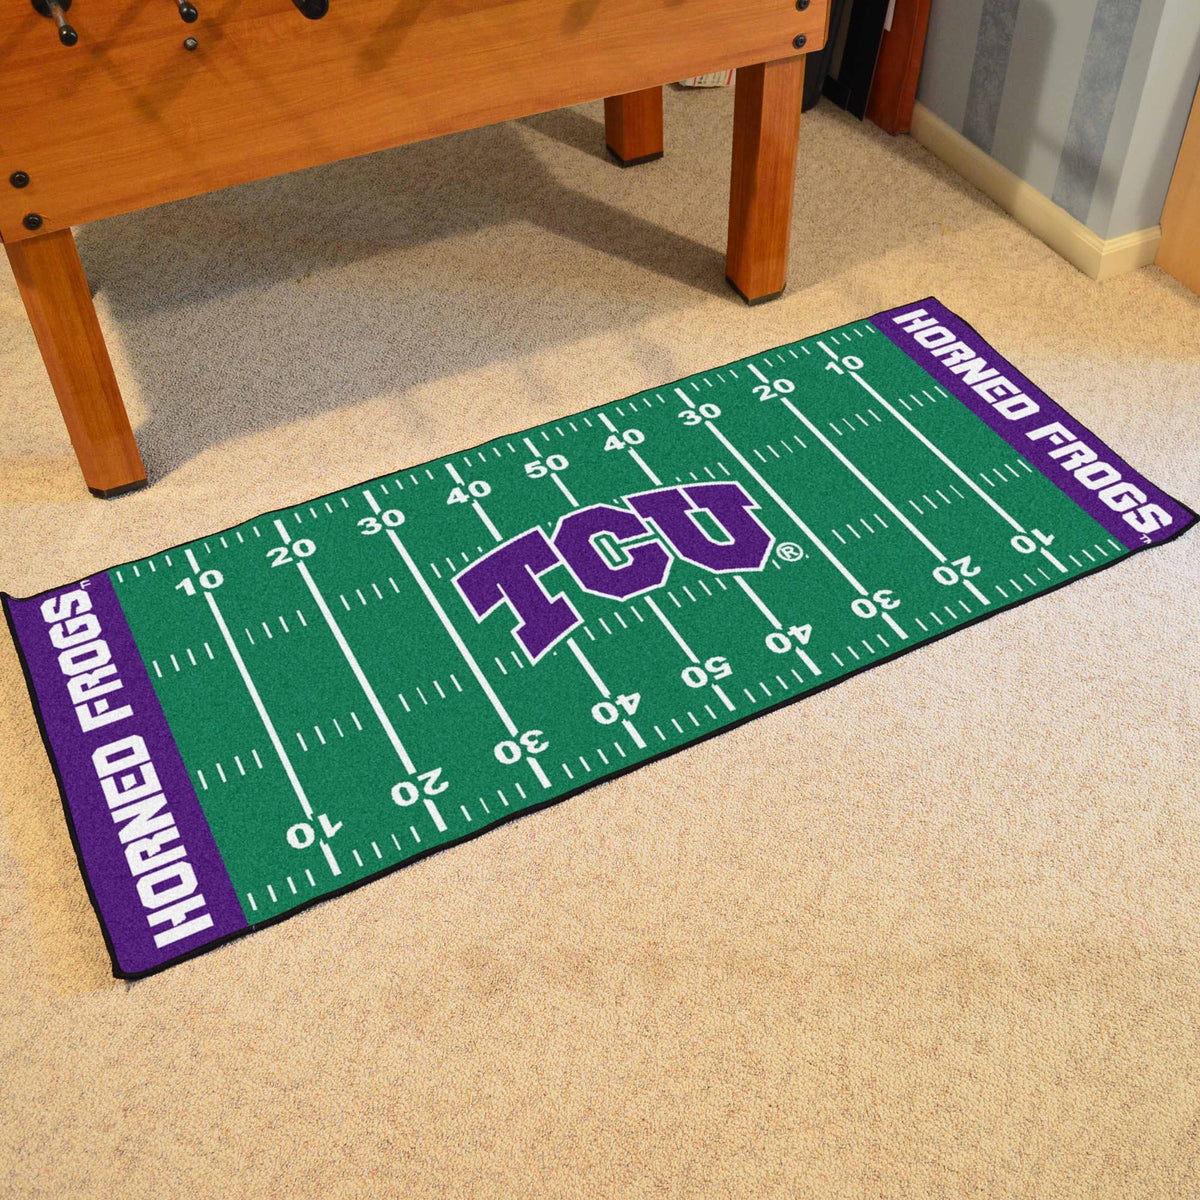 Collegiate - Football Field Runner Collegiate Mats, Rectangular Mats, Football Field Runner, Collegiate, Home Fan Mats TCU